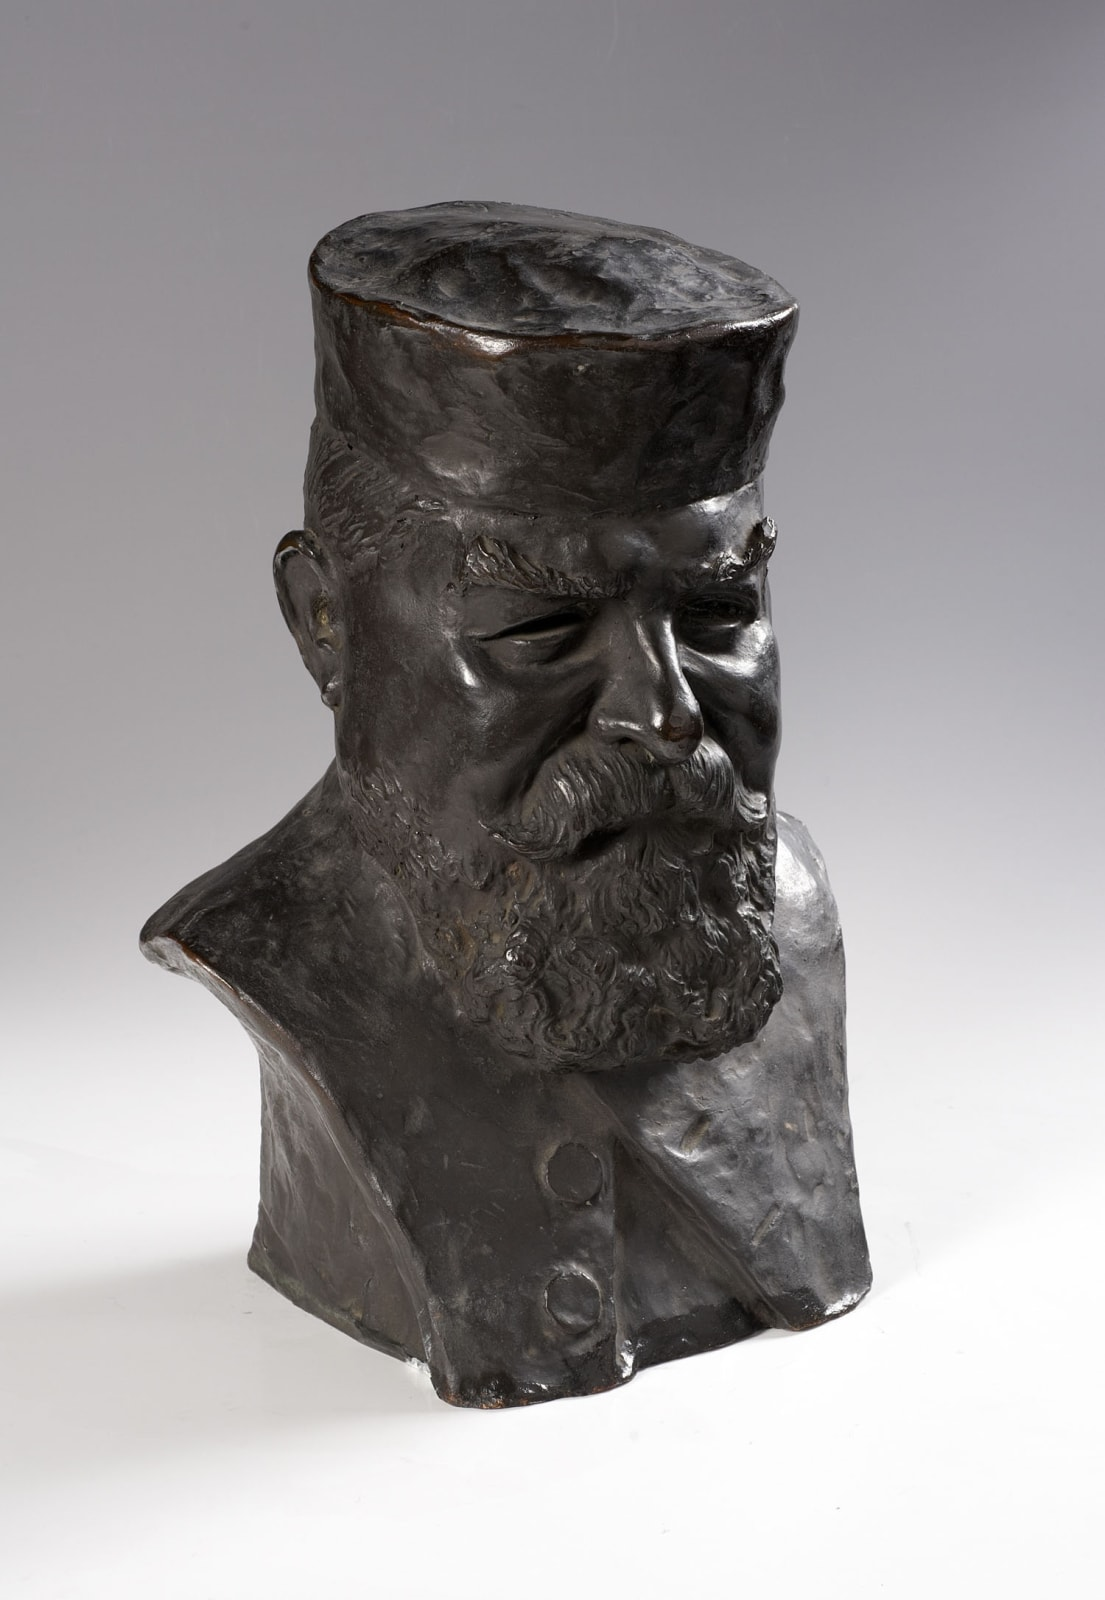 Benno Elkan (1877-1960) Chief Rabbi Dr J.H. Hertz 1933 Bronze 42 x 32 x 22 cm Ben Uri Collection © Benno Elkan estate To see and discover more about this artist click here